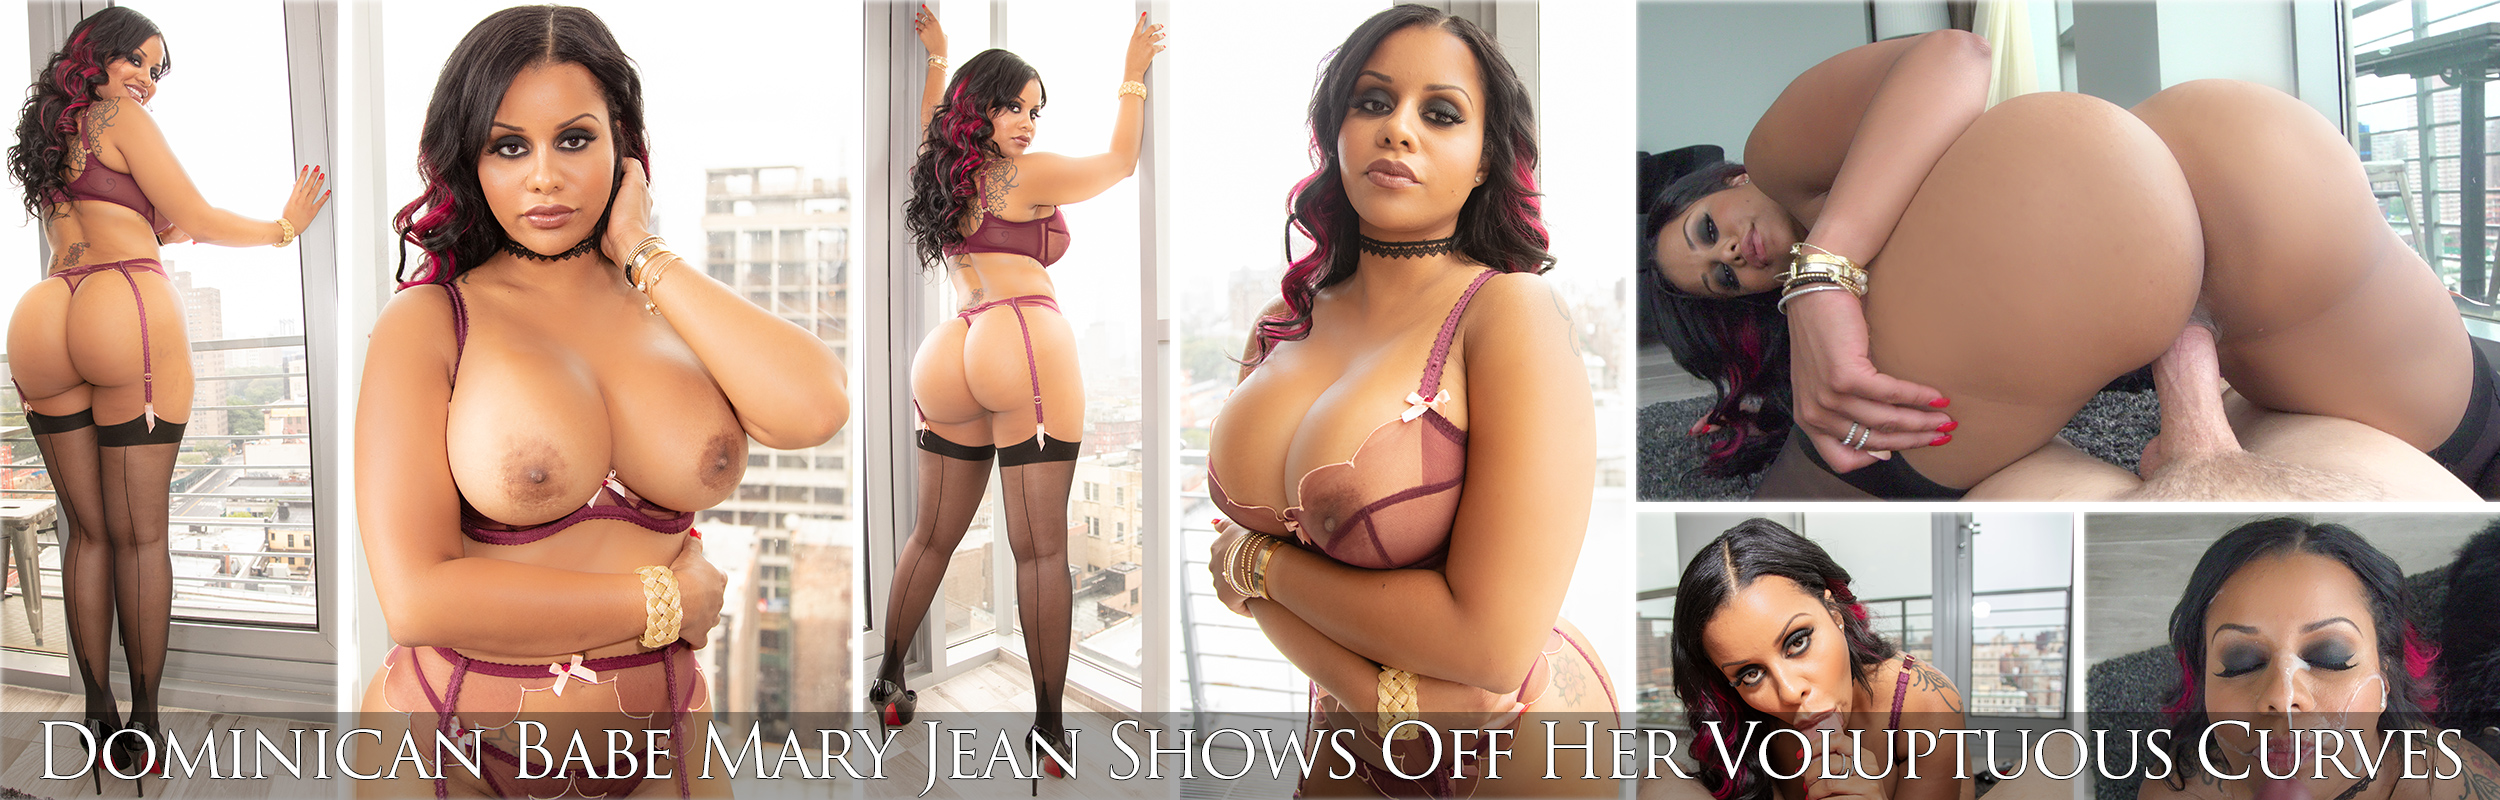 Dominican Babe Mary Jean Shows Off Her Voluptuous Curves